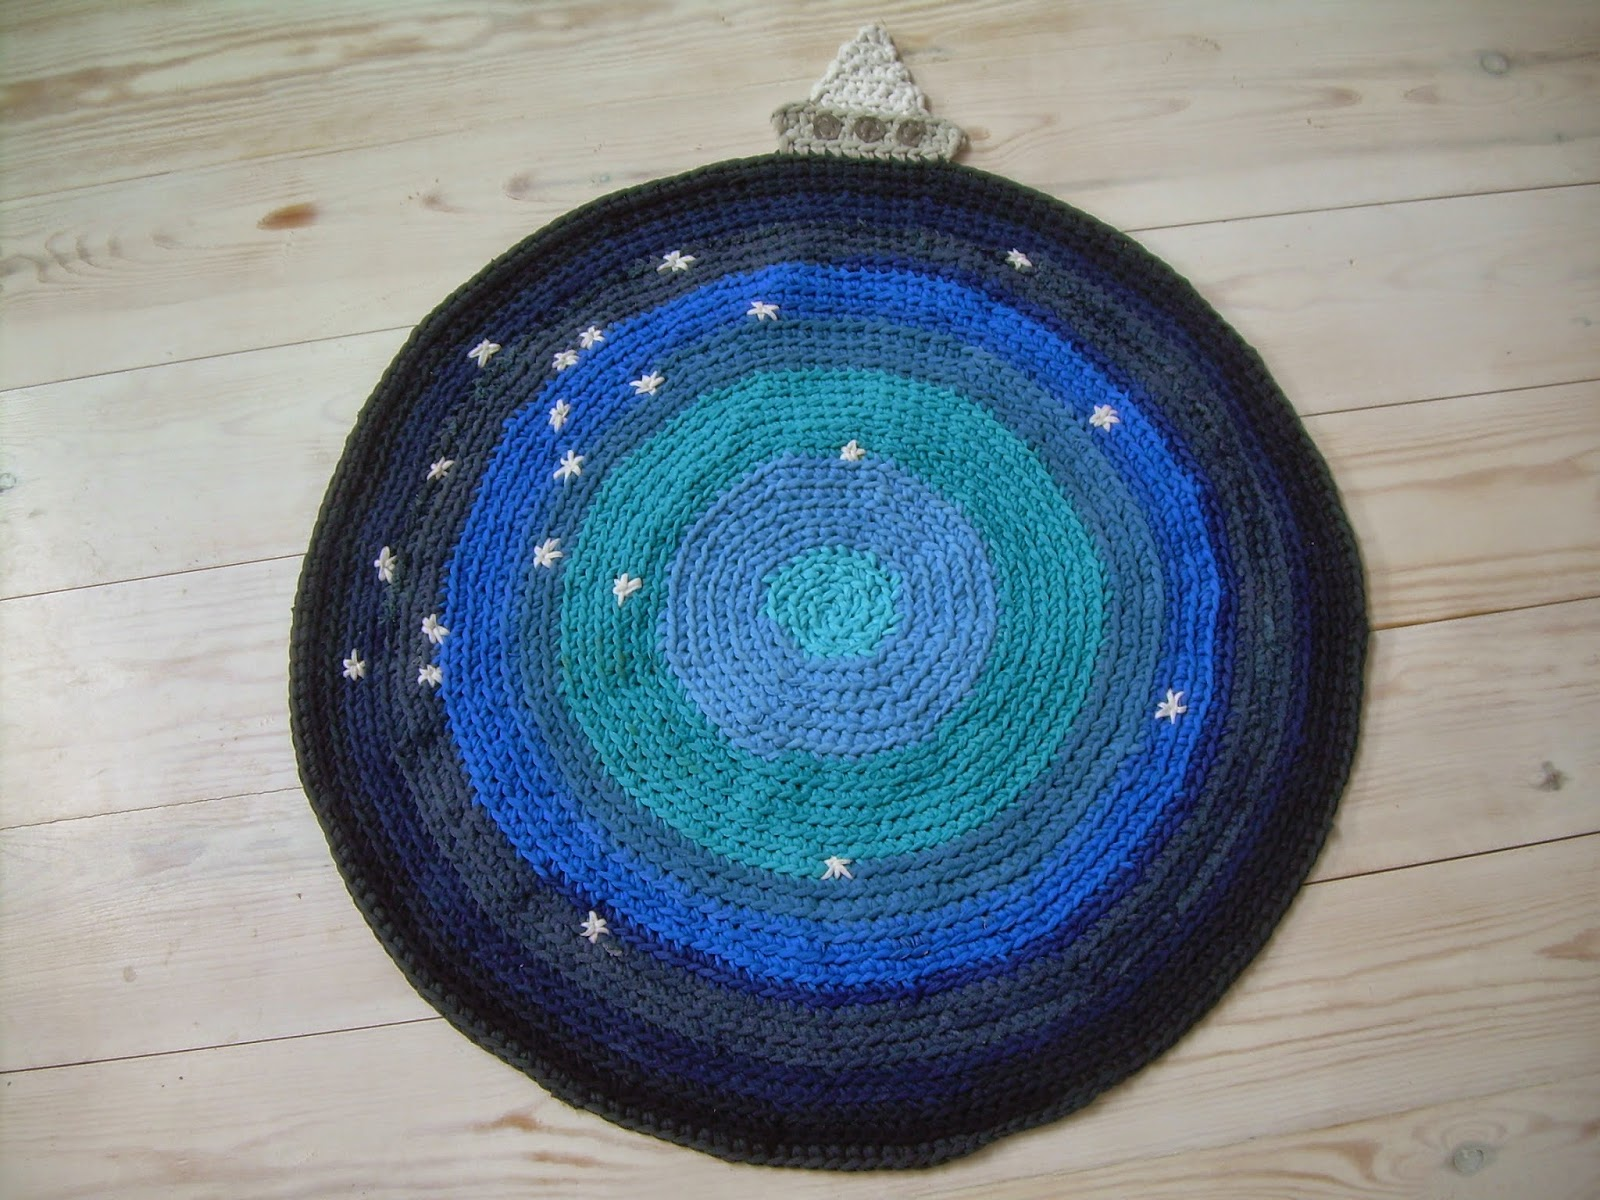 https://www.etsy.com/listing/202742841/the-boat-in-a-sea-of-stars-circular-rug?ref=shop_home_active_1